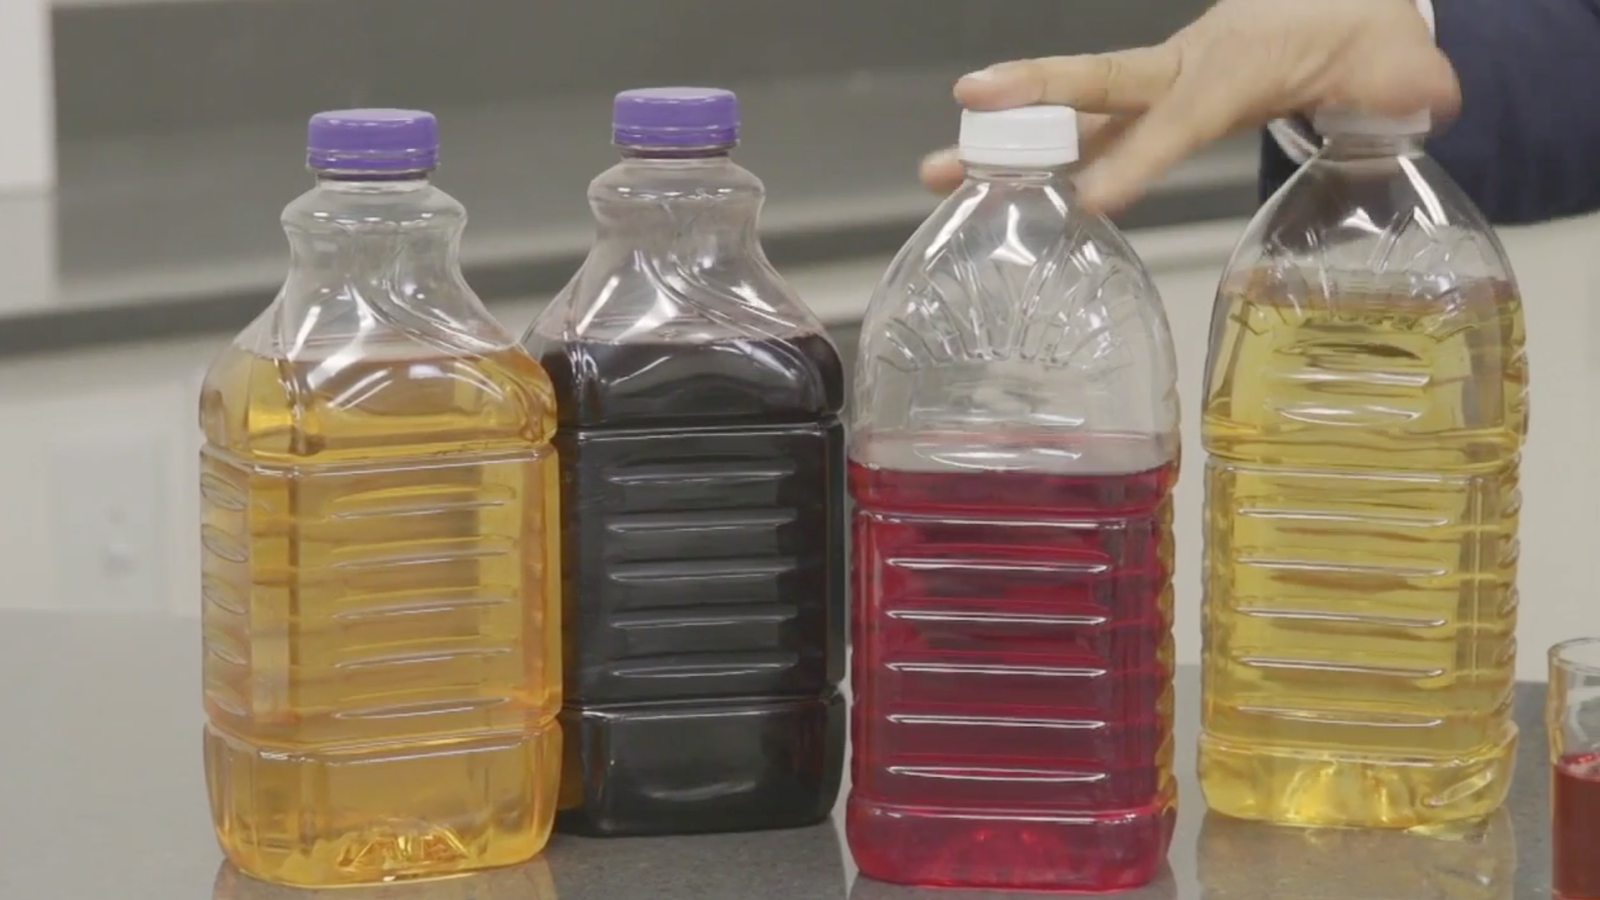 Heavy metals such as arsenic, cadmium and lead were found in popular fruit juices. (WBMA)